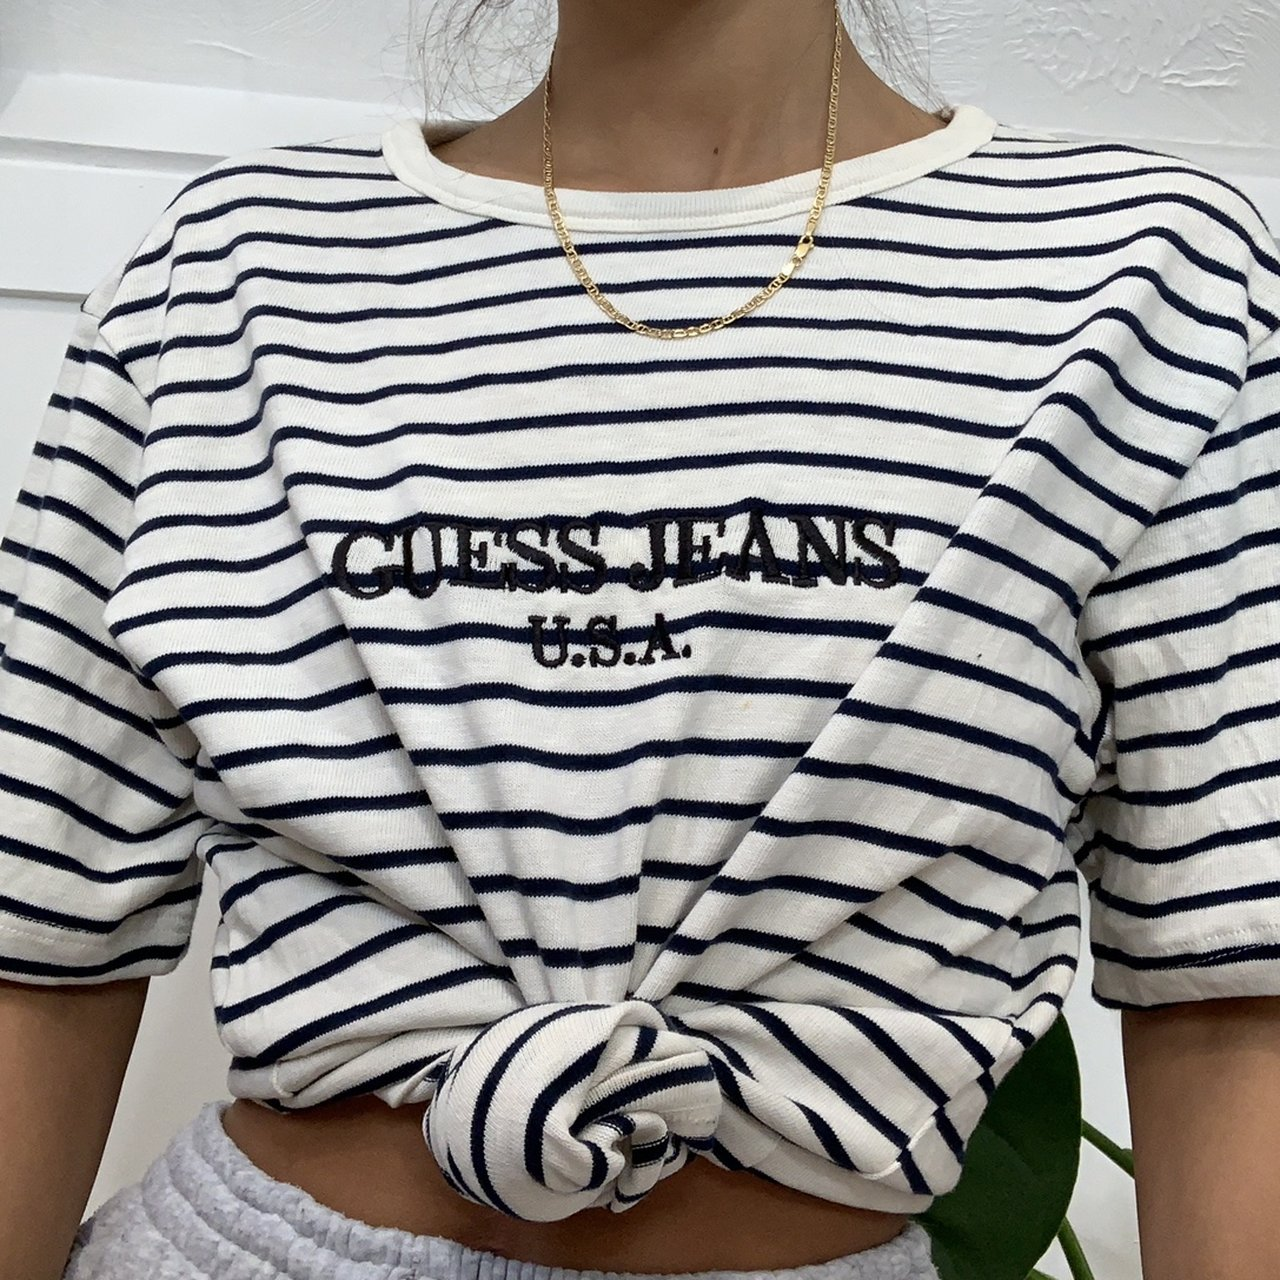 338f8e1e0a8e @sellynelly. 2 months ago. United Kingdom. 🍒VINTAGE 90s GUESS JEANS  OVERSIZED T SHIRT🍒